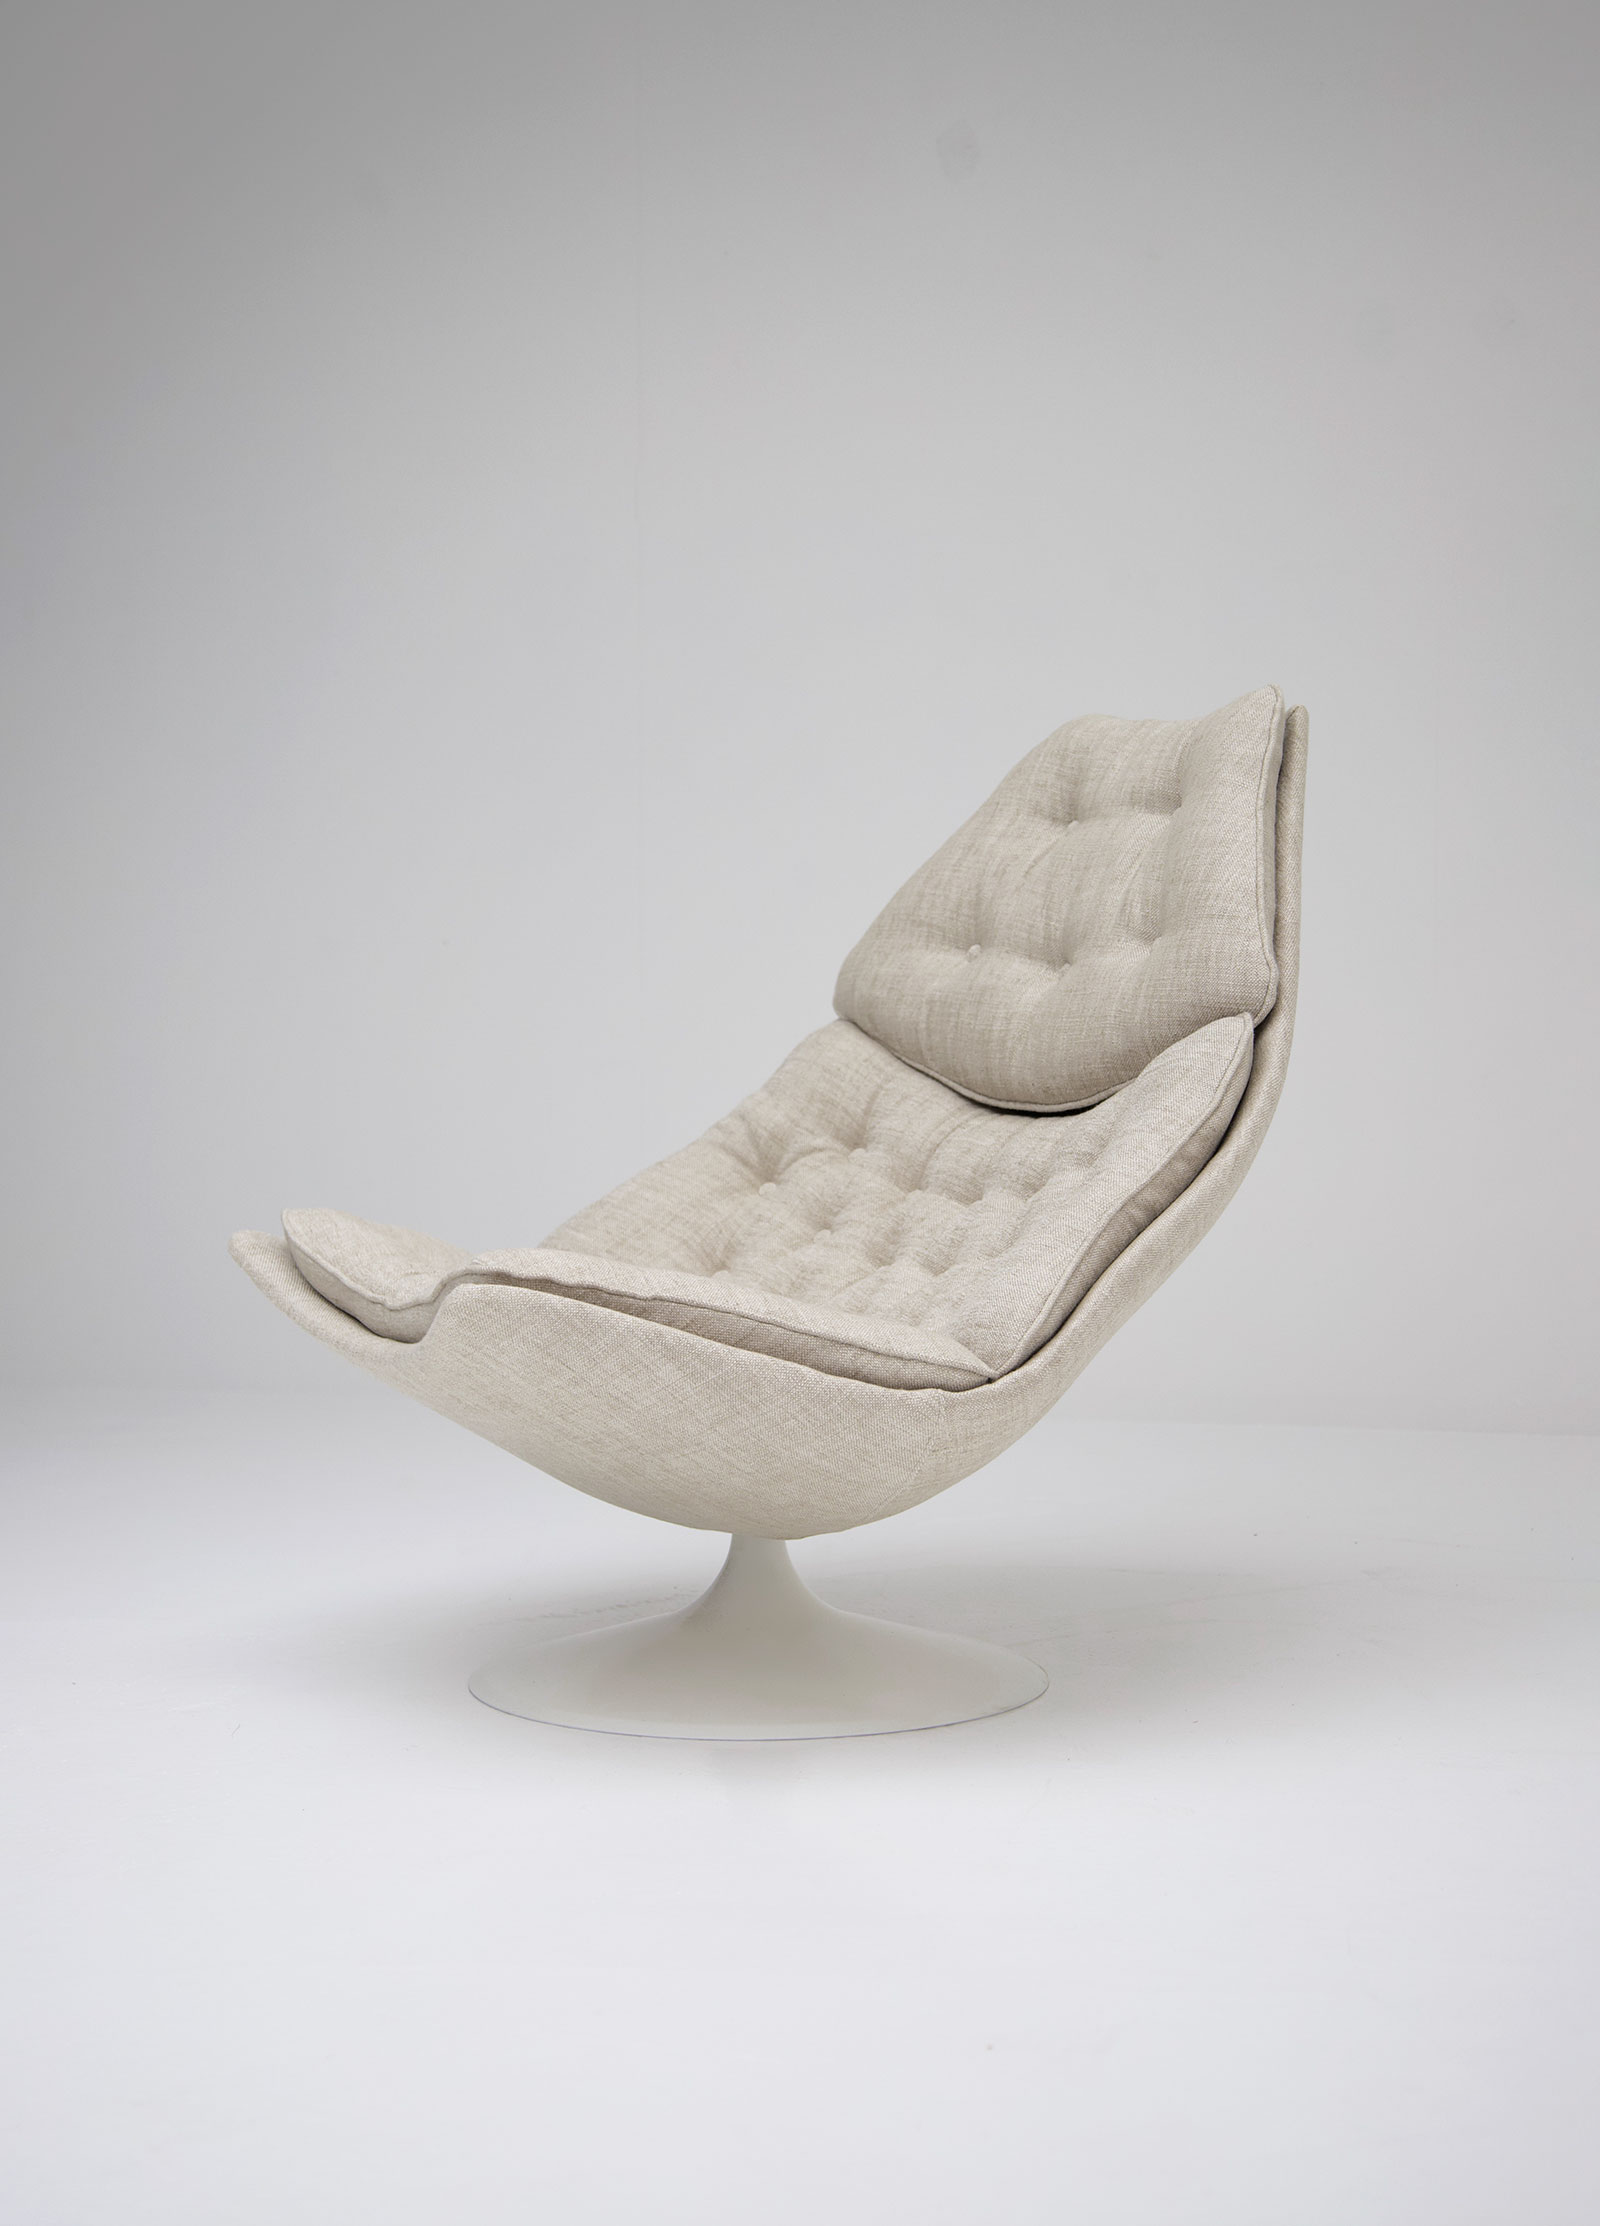 artifort f588 fauteuil by geoffrey harcourtimage 4